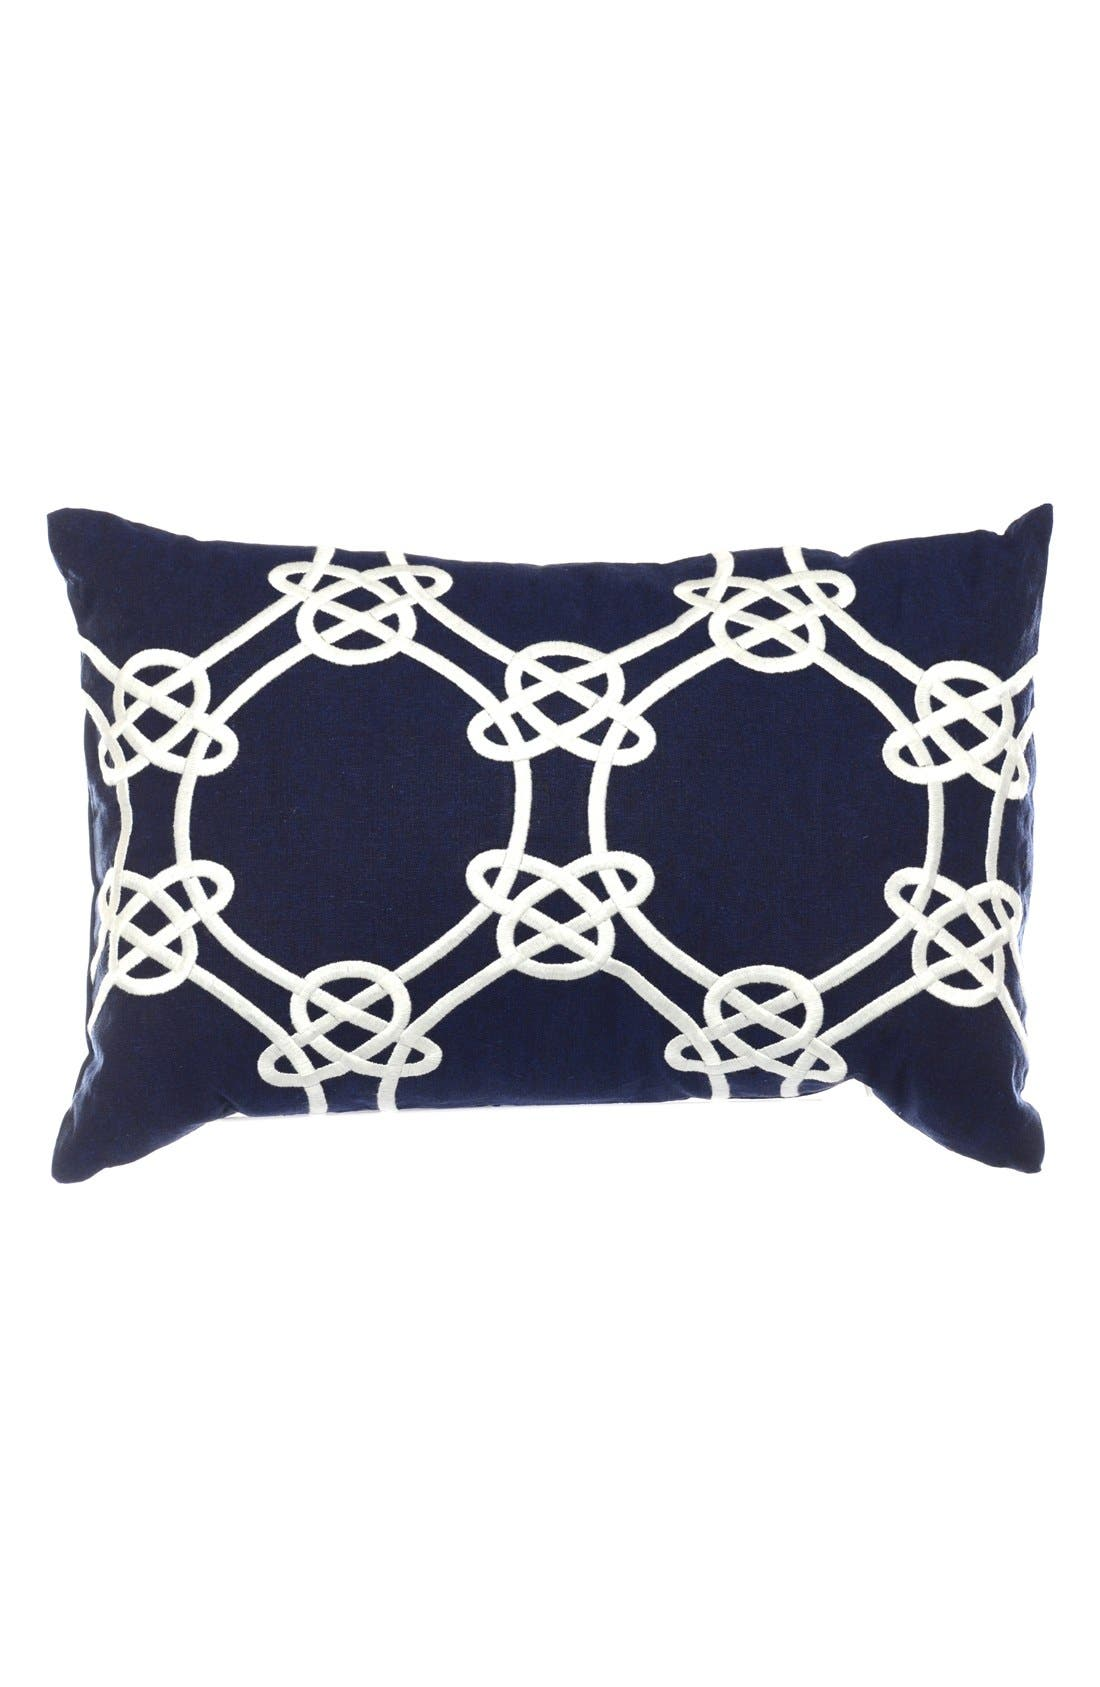 Main Image - Nautica 'Clemsford - Breakfast' Embroidered Linen & Cotton Accent Pillow